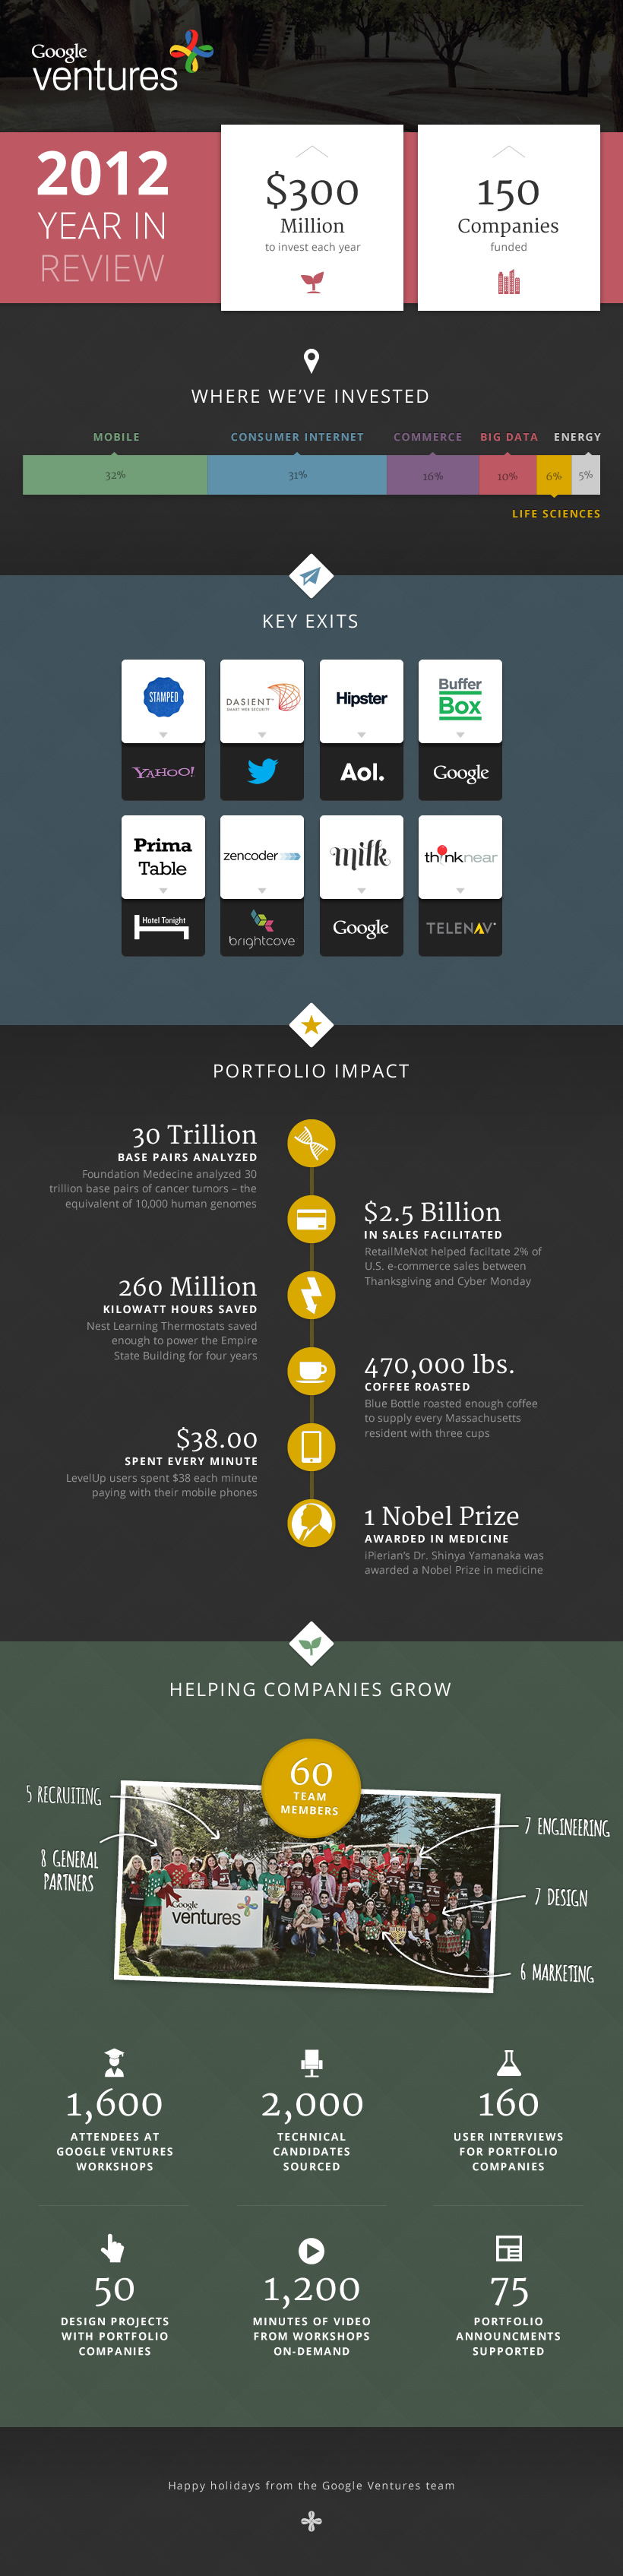 Google Ventures 'Year In Review' 2012